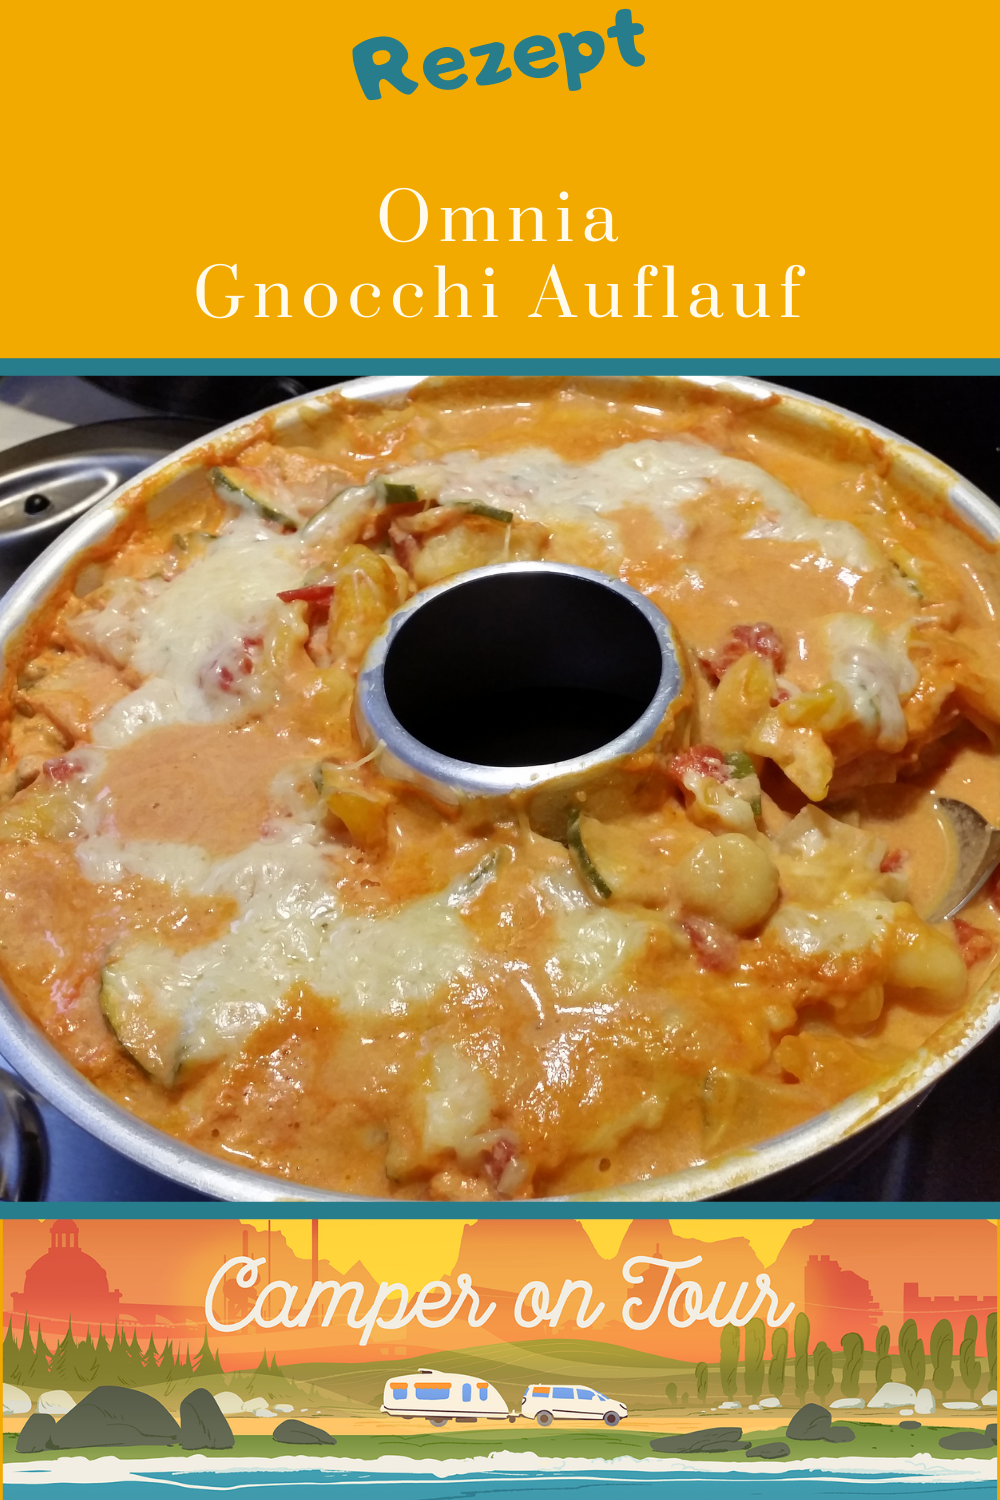 Recipes for the camping kitchen. Gnocchi casserole from the Omnia